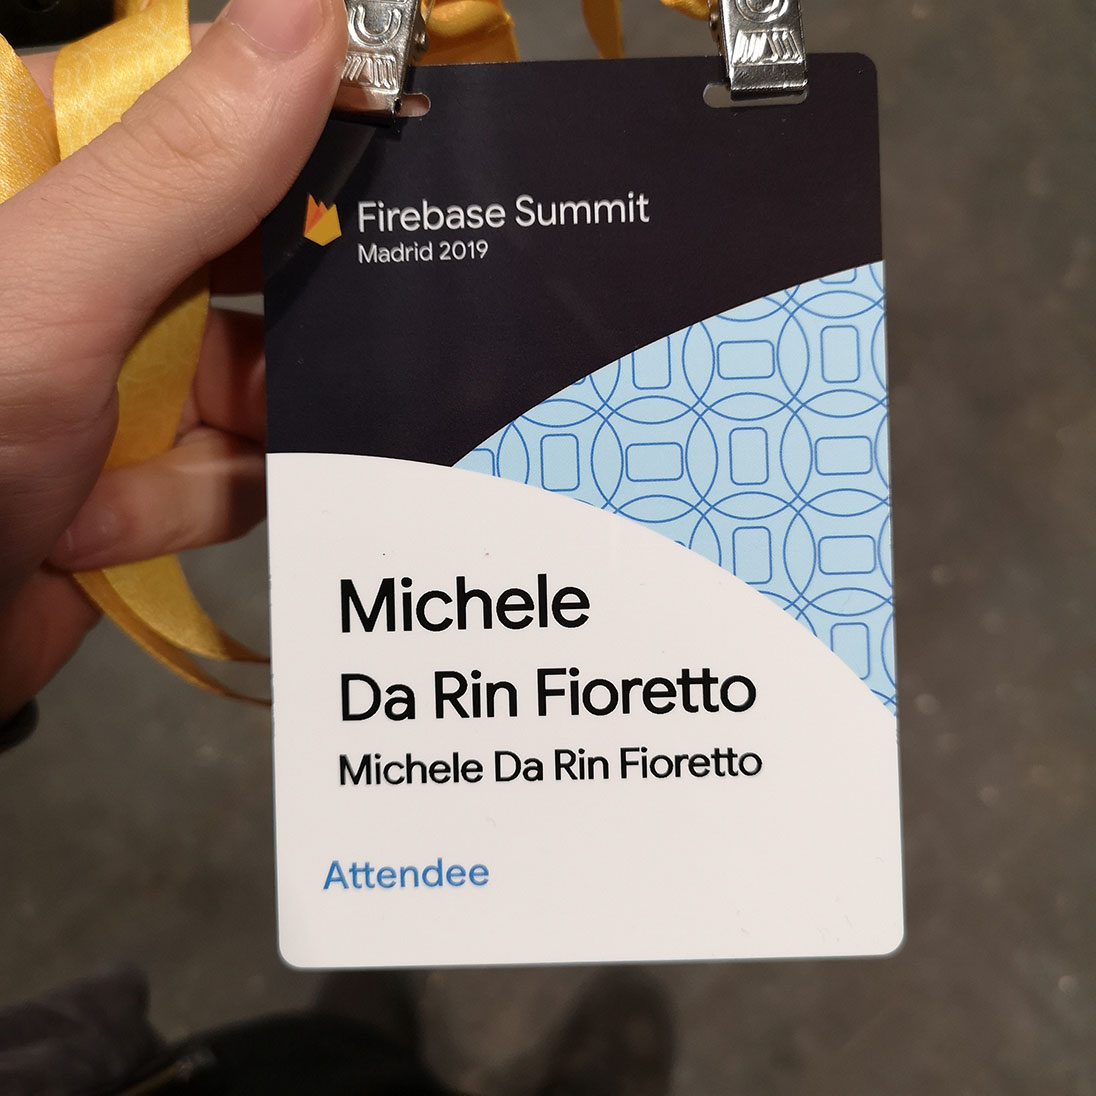 Michele Da Rin Fioretto Attendee Badge